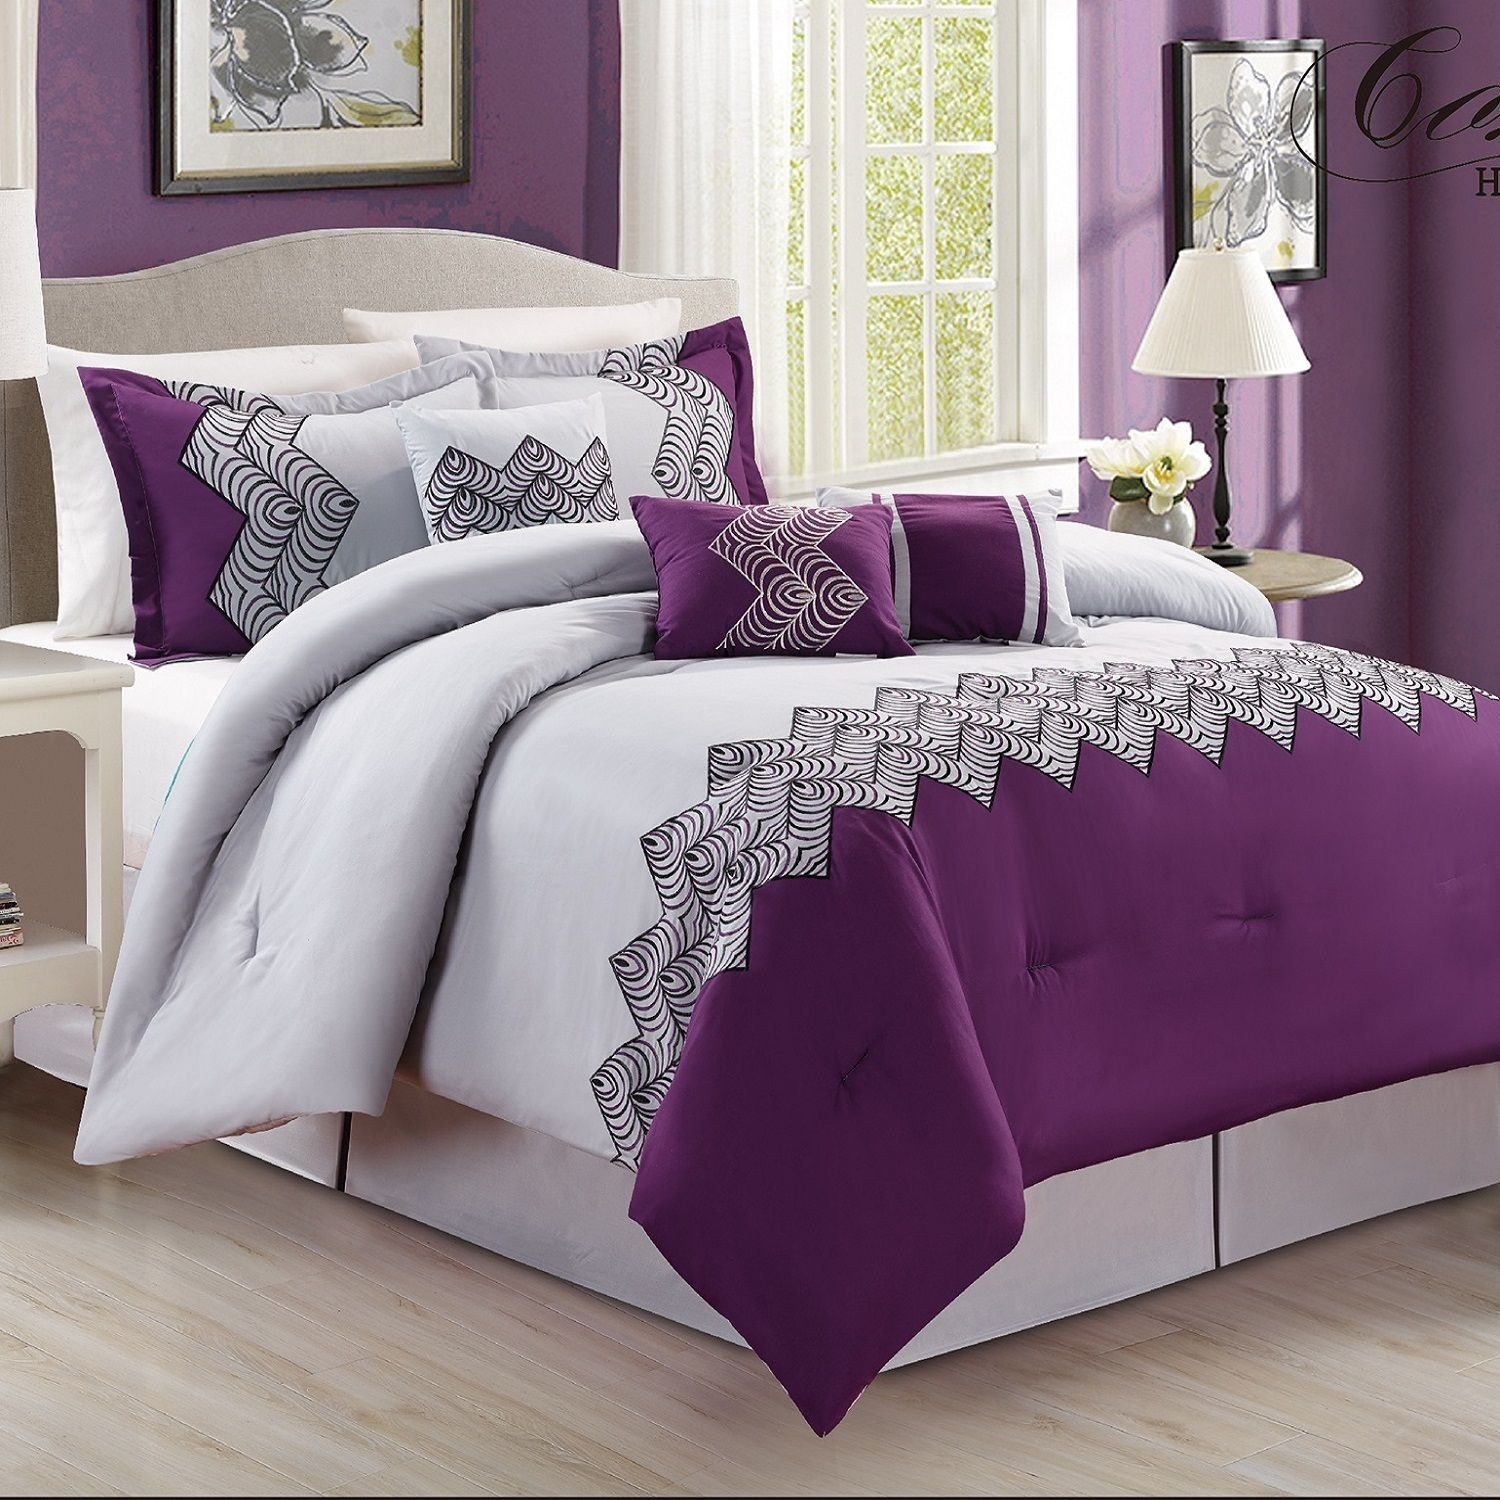 Overstockcom Online Shopping Bedding Furniture Electronics